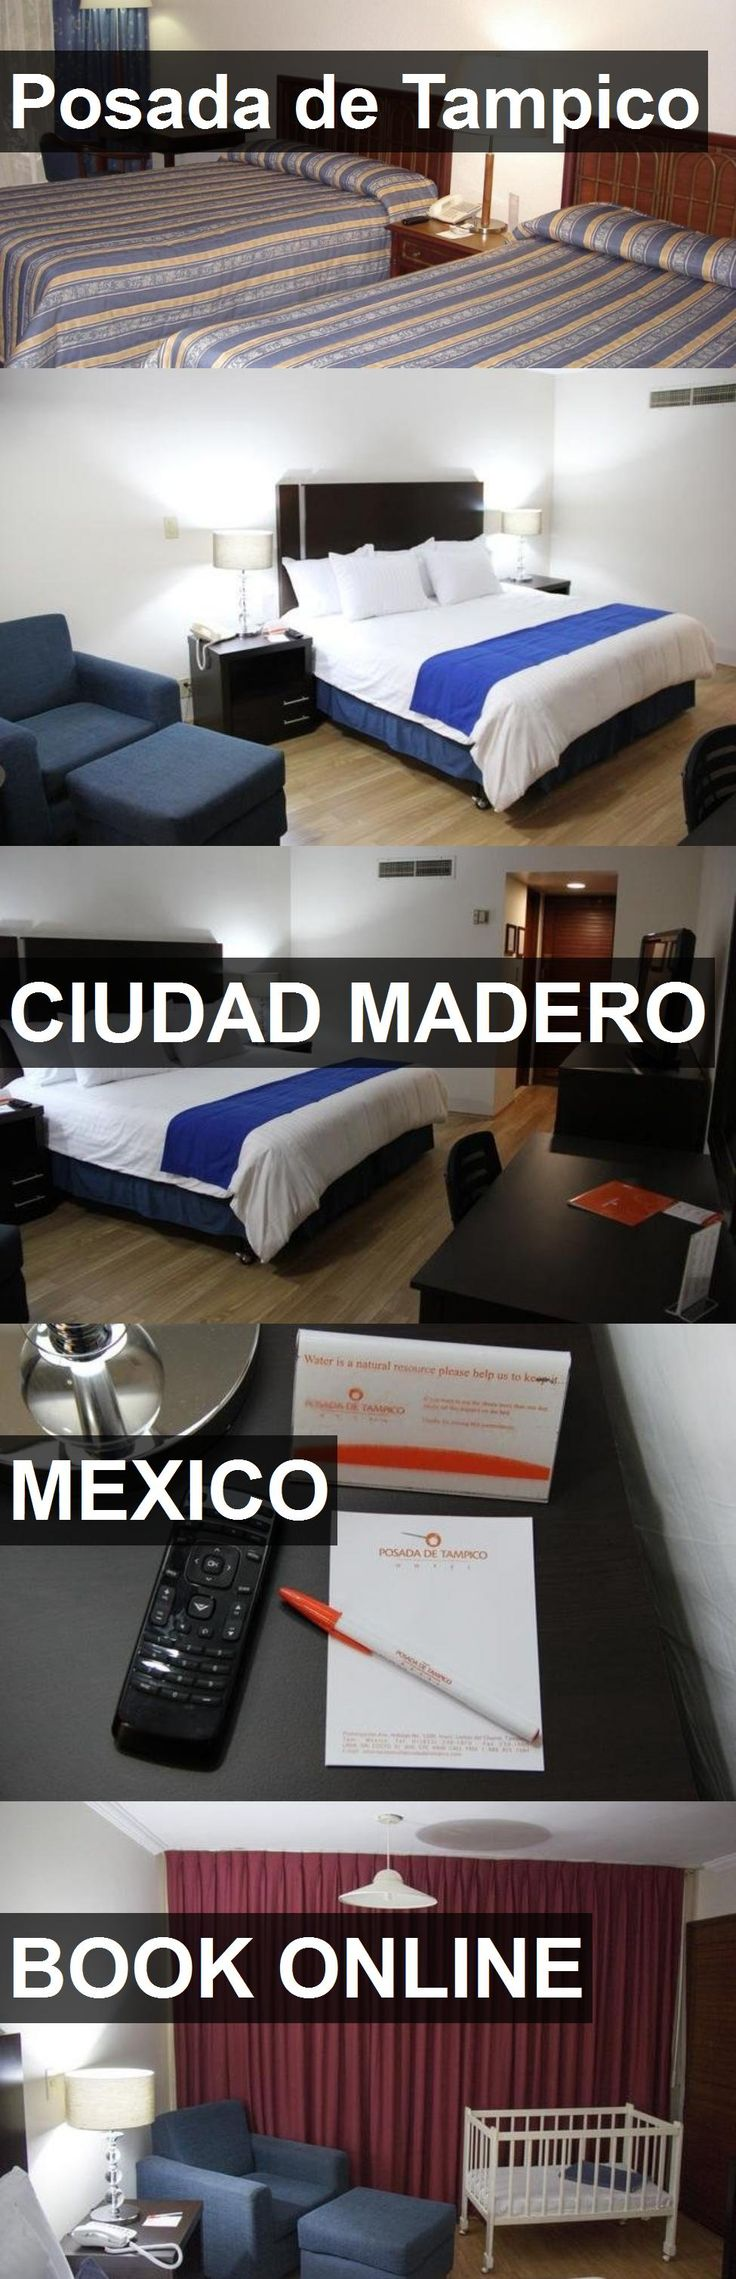 Hotel Posada de Tampico in Ciudad Madero, Mexico. For more information, photos, reviews and best prices please follow the link. #Mexico #CiudadMadero #travel #vacation #hotel